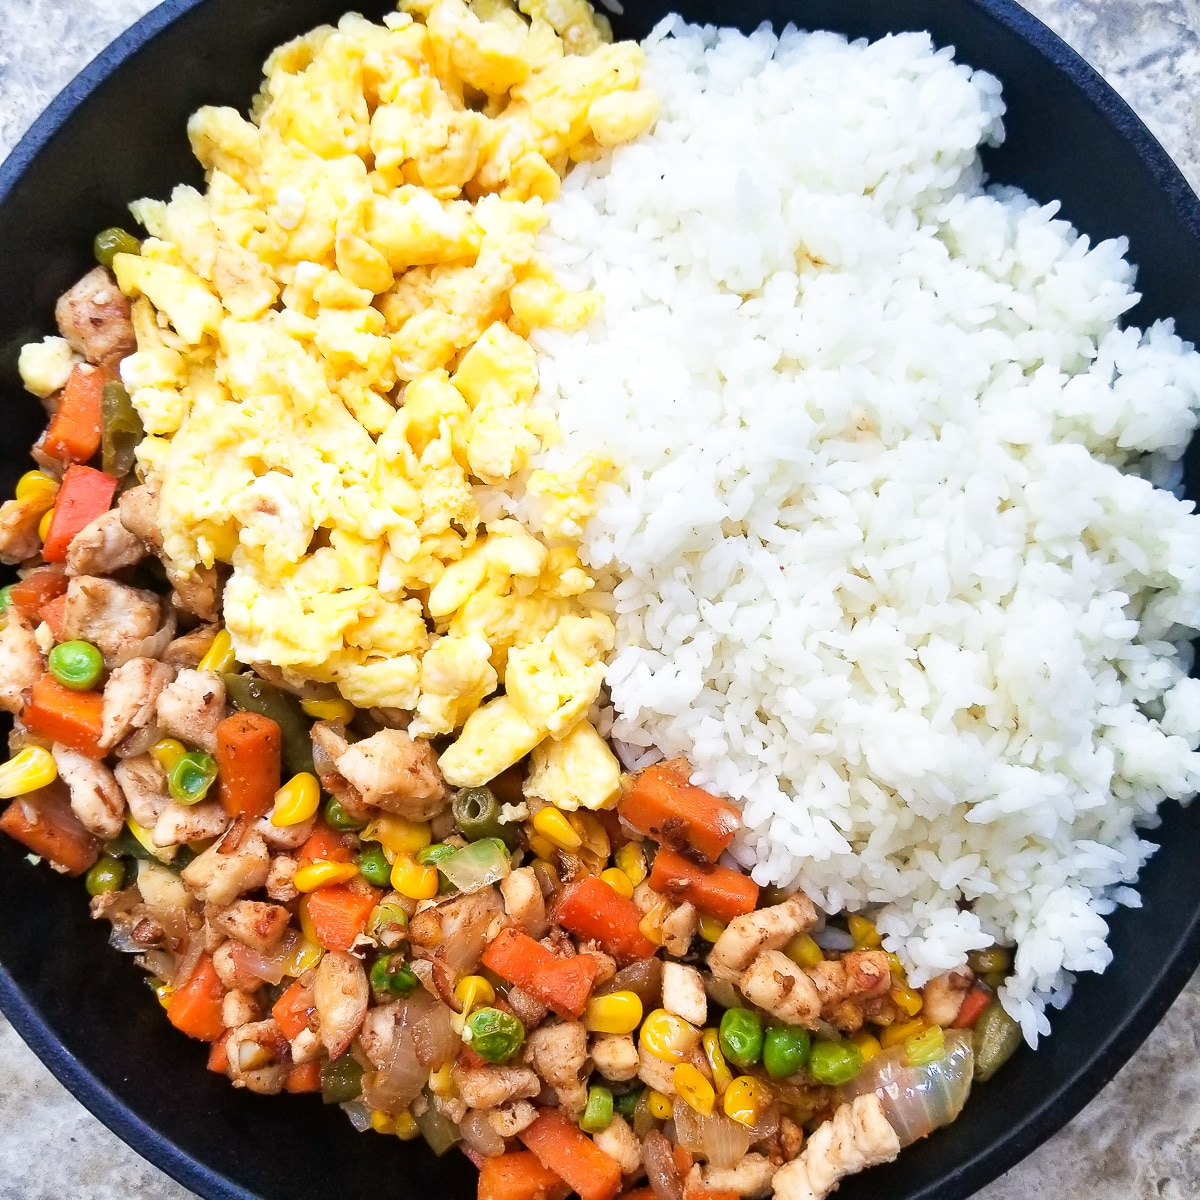 Veggie mix, scrambled eggs and white rice in cast iron skillet.